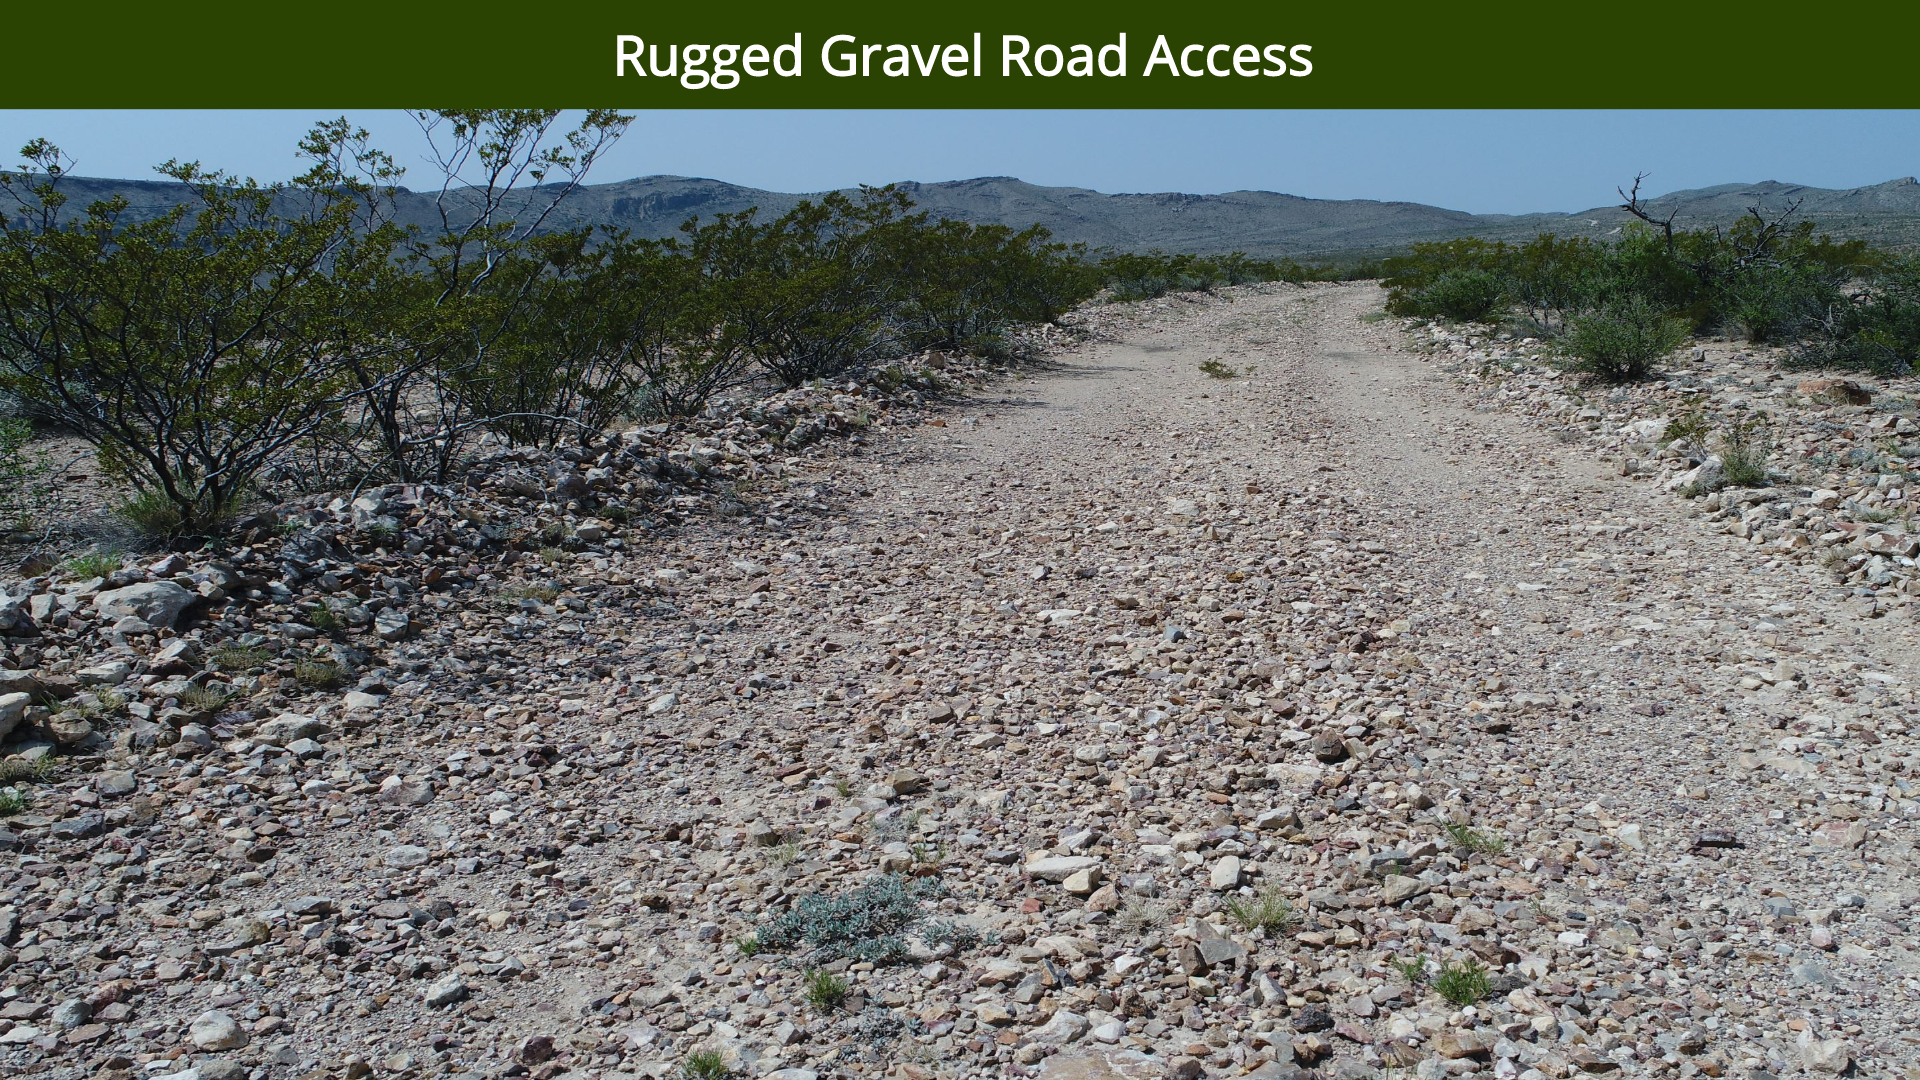 Rugged Gravel Road Access